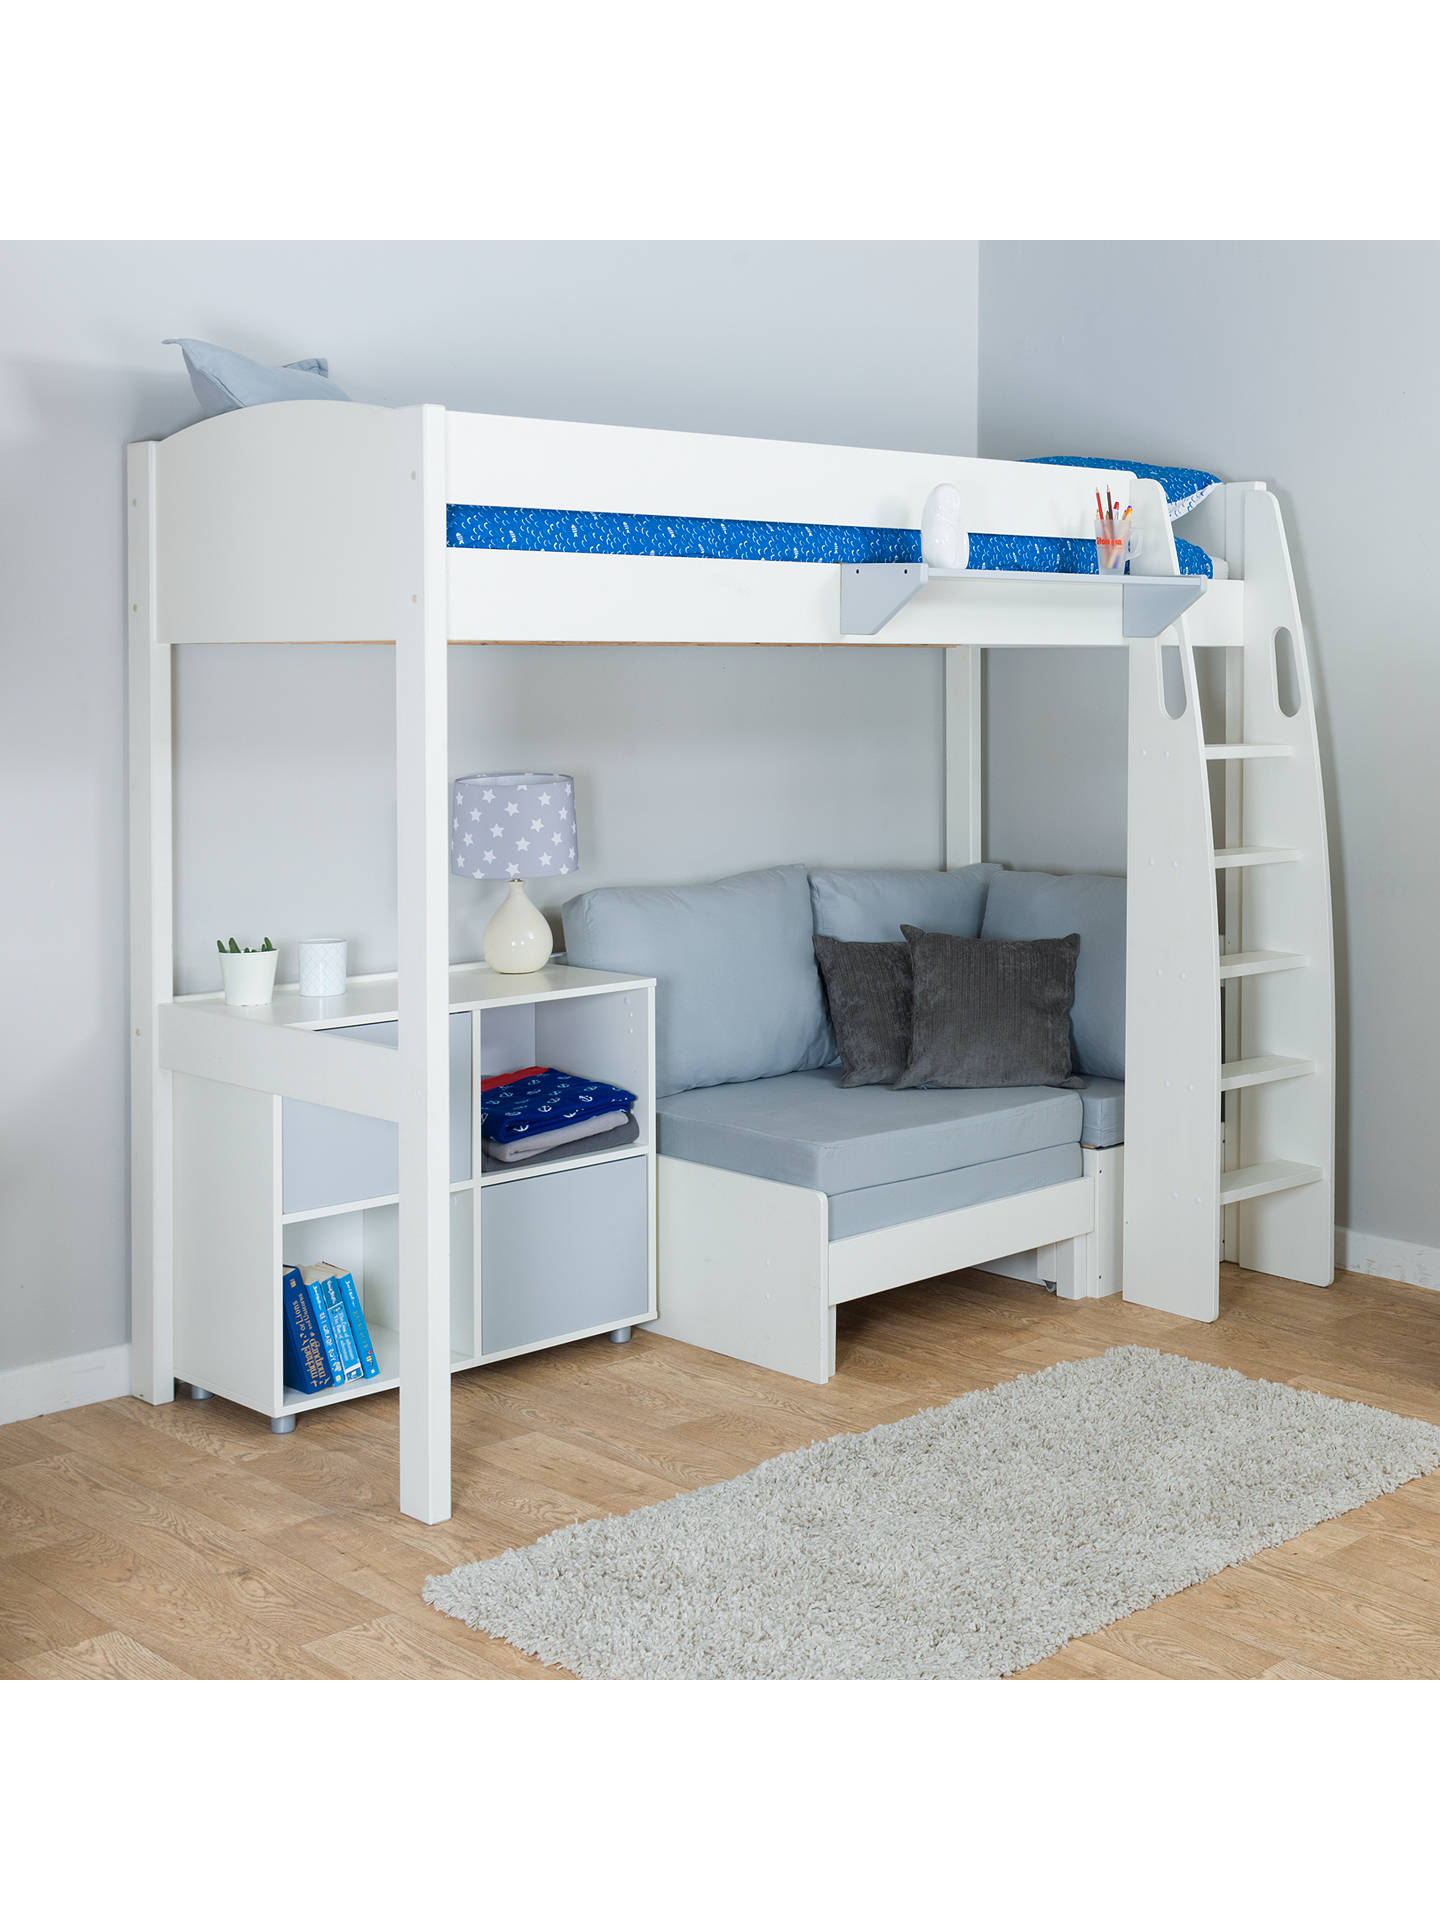 Buy Stompa Uno S Plus High-Sleeper with White Headboard, Grey Chair Bed and 2 Door Cube Unit, Grey Online at johnlewis.com